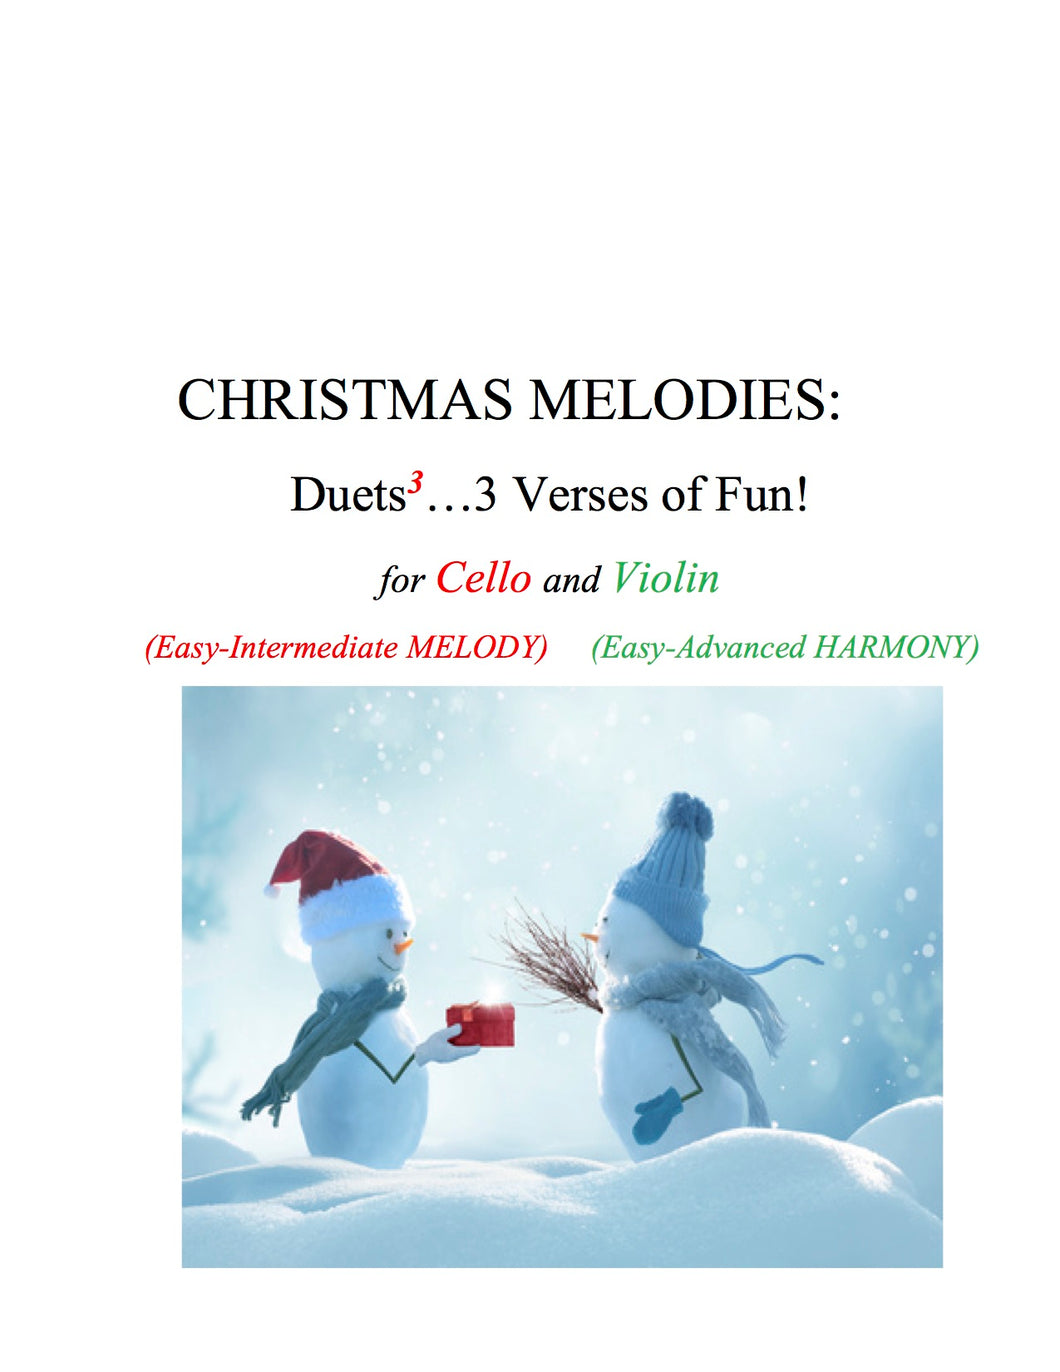 039 - Christmas Melodies For Cello and Violin: Duets to the 3rd Power...3 Verses of FUN! Cello (Melody) and Violin (Harmony)